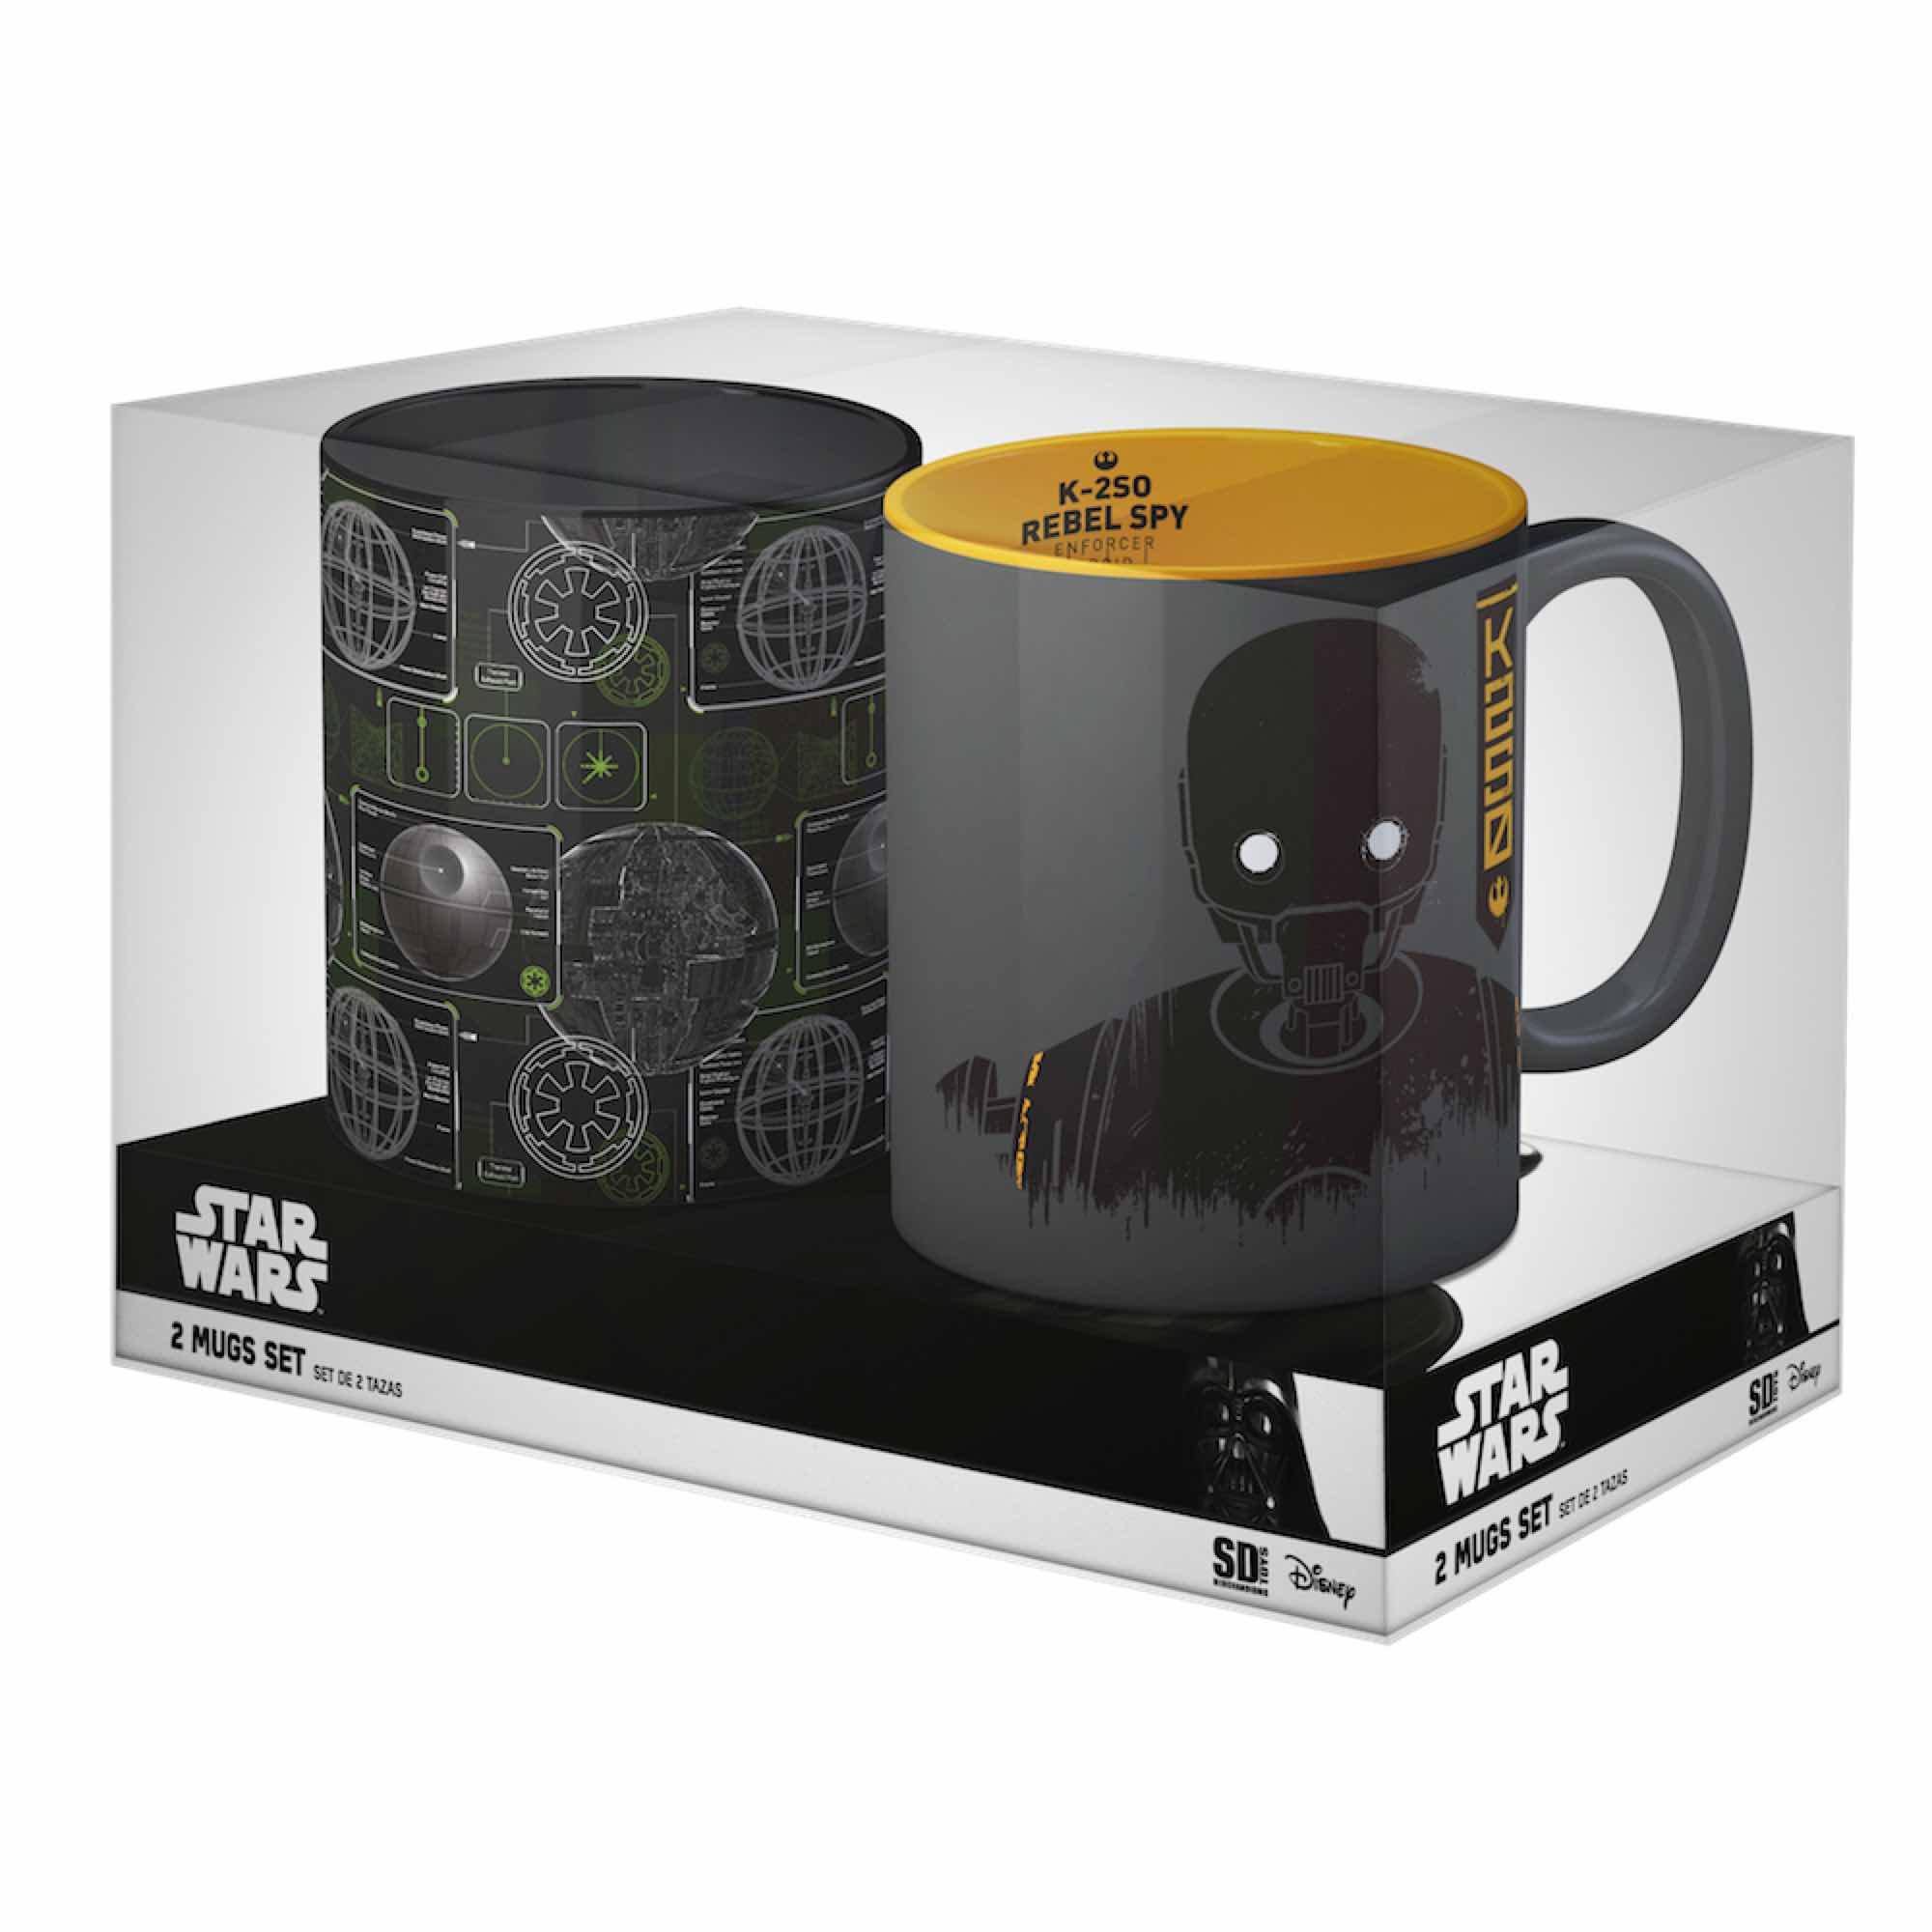 PACK OFERTA 2: DEATH STAR + K-2SO SET 2 TAZAS STAR WARS